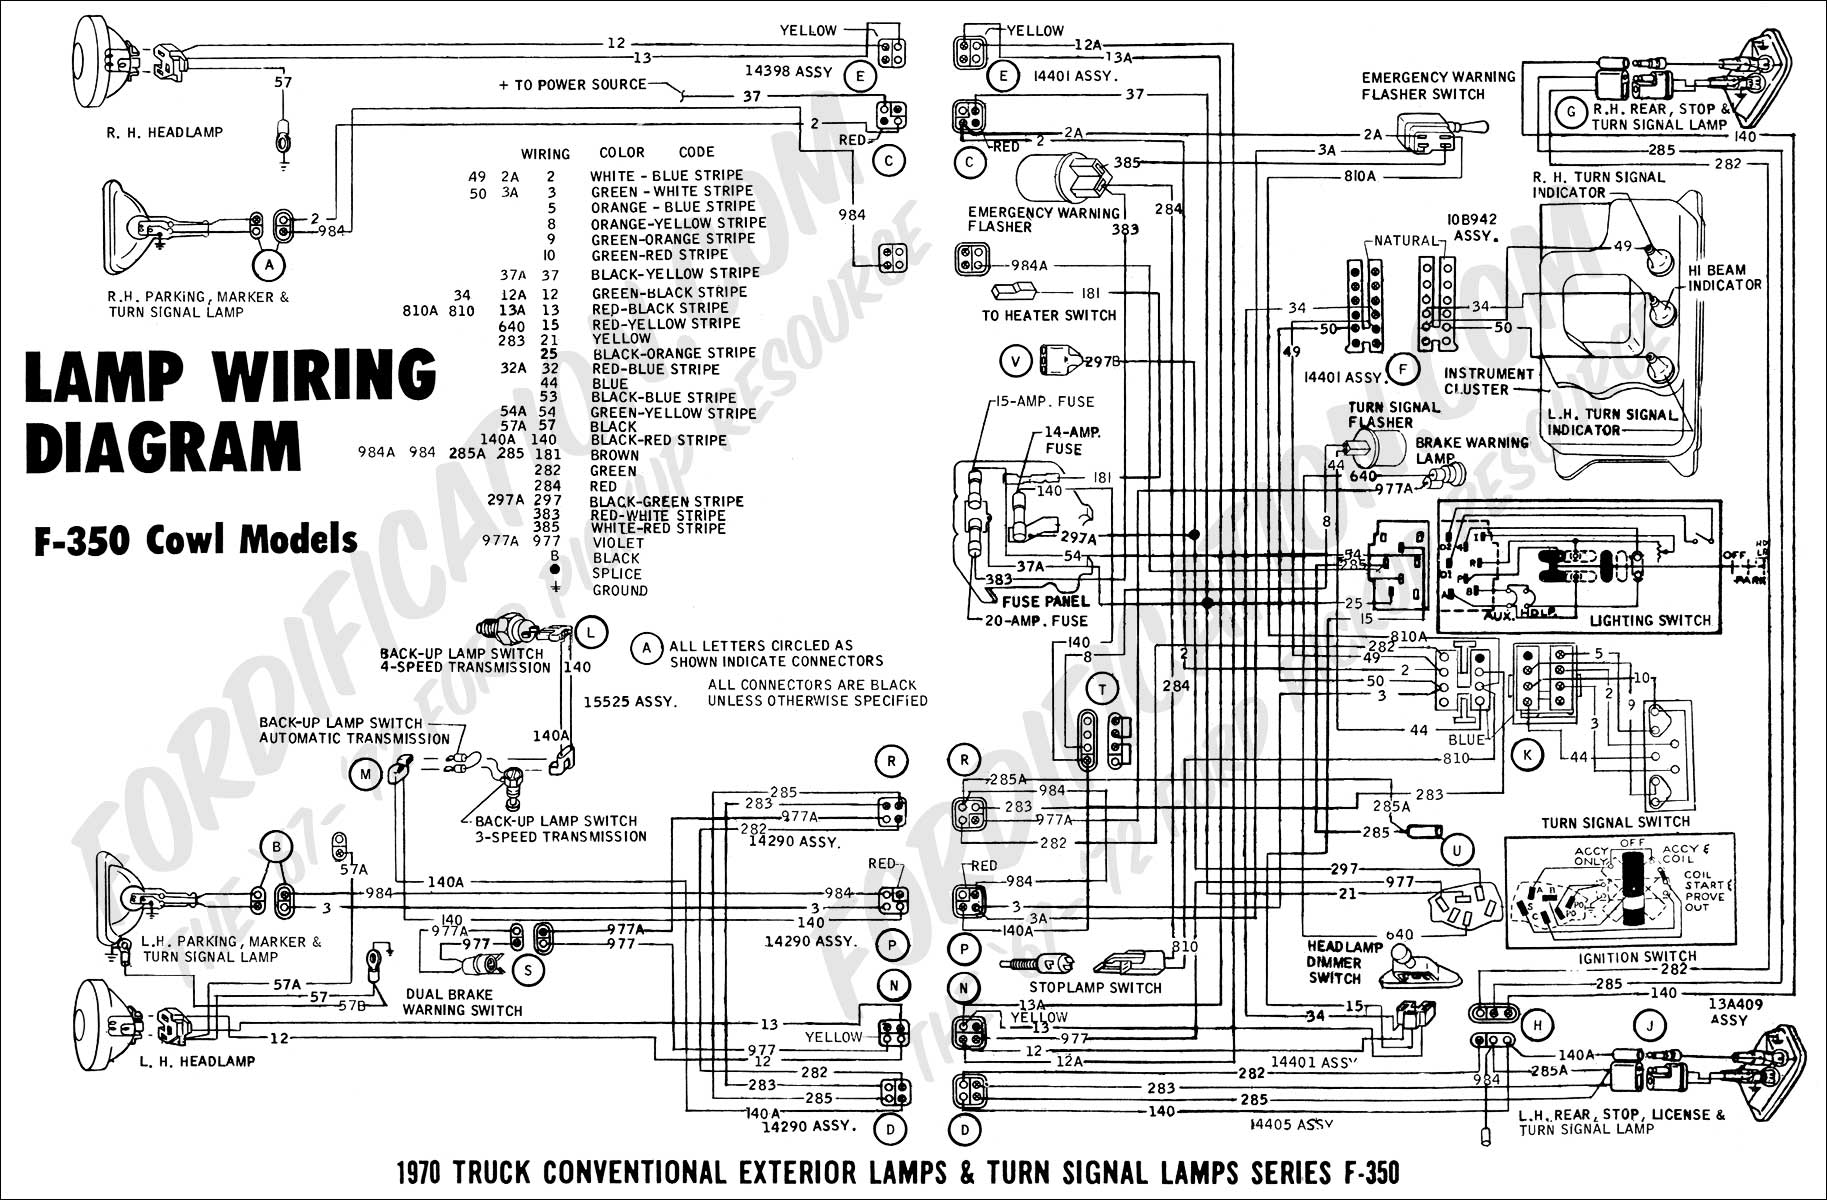 2011 f350 wiring diagram schematic diagram dataford f350 wiring diagram wiring diagram mega 2011 ford f250 wiring diagram 2011 f350 wiring diagram